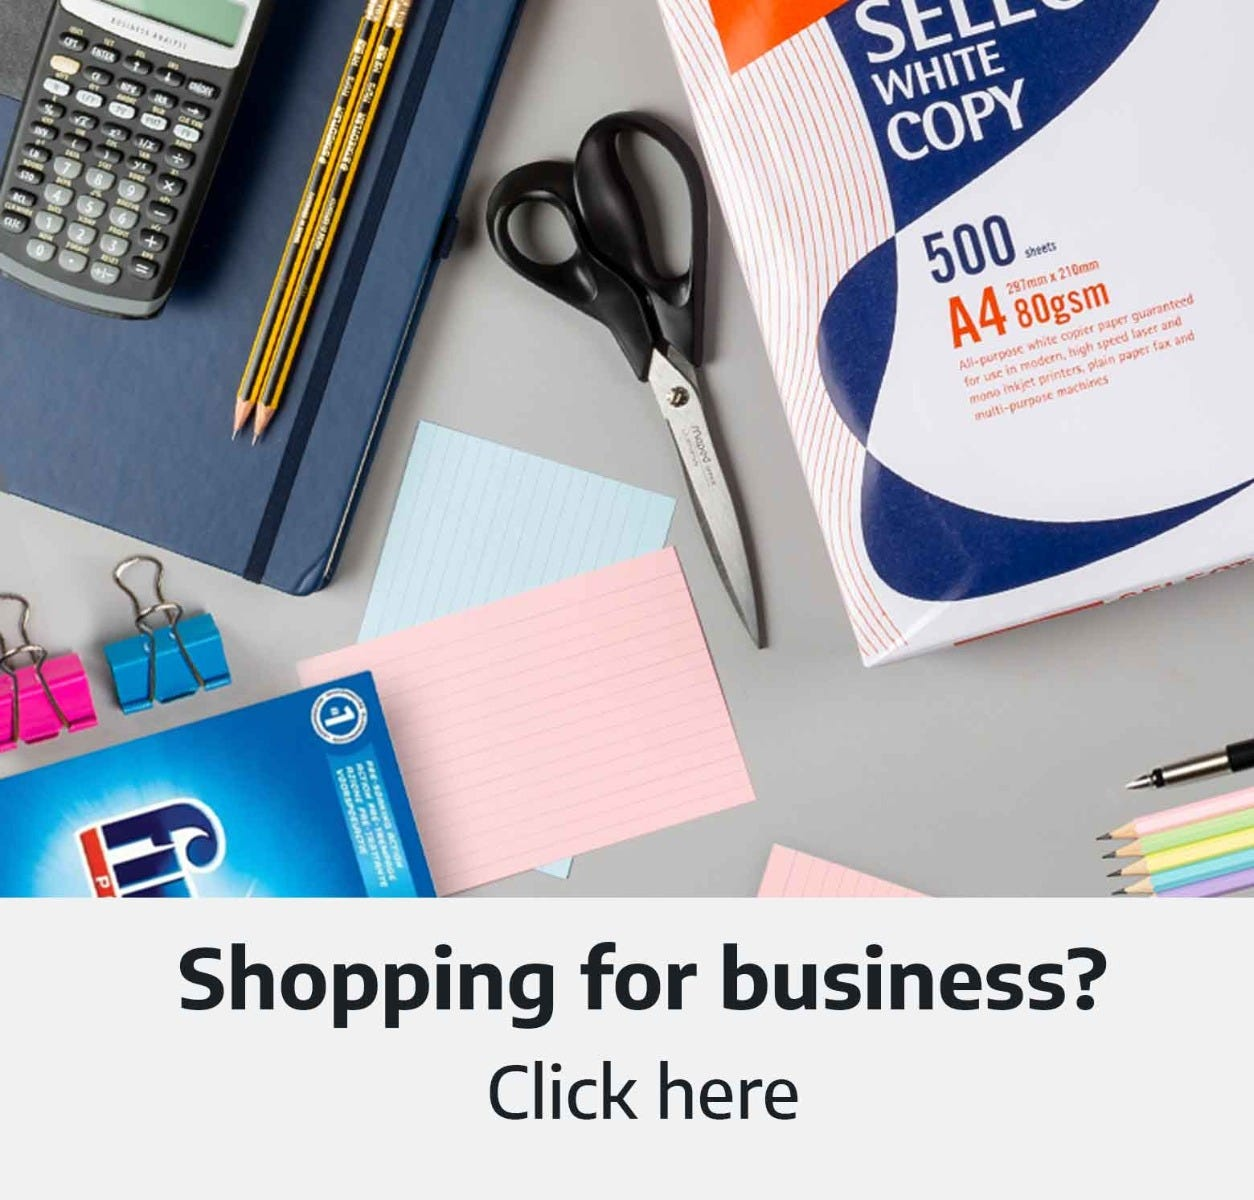 Shopping for business?